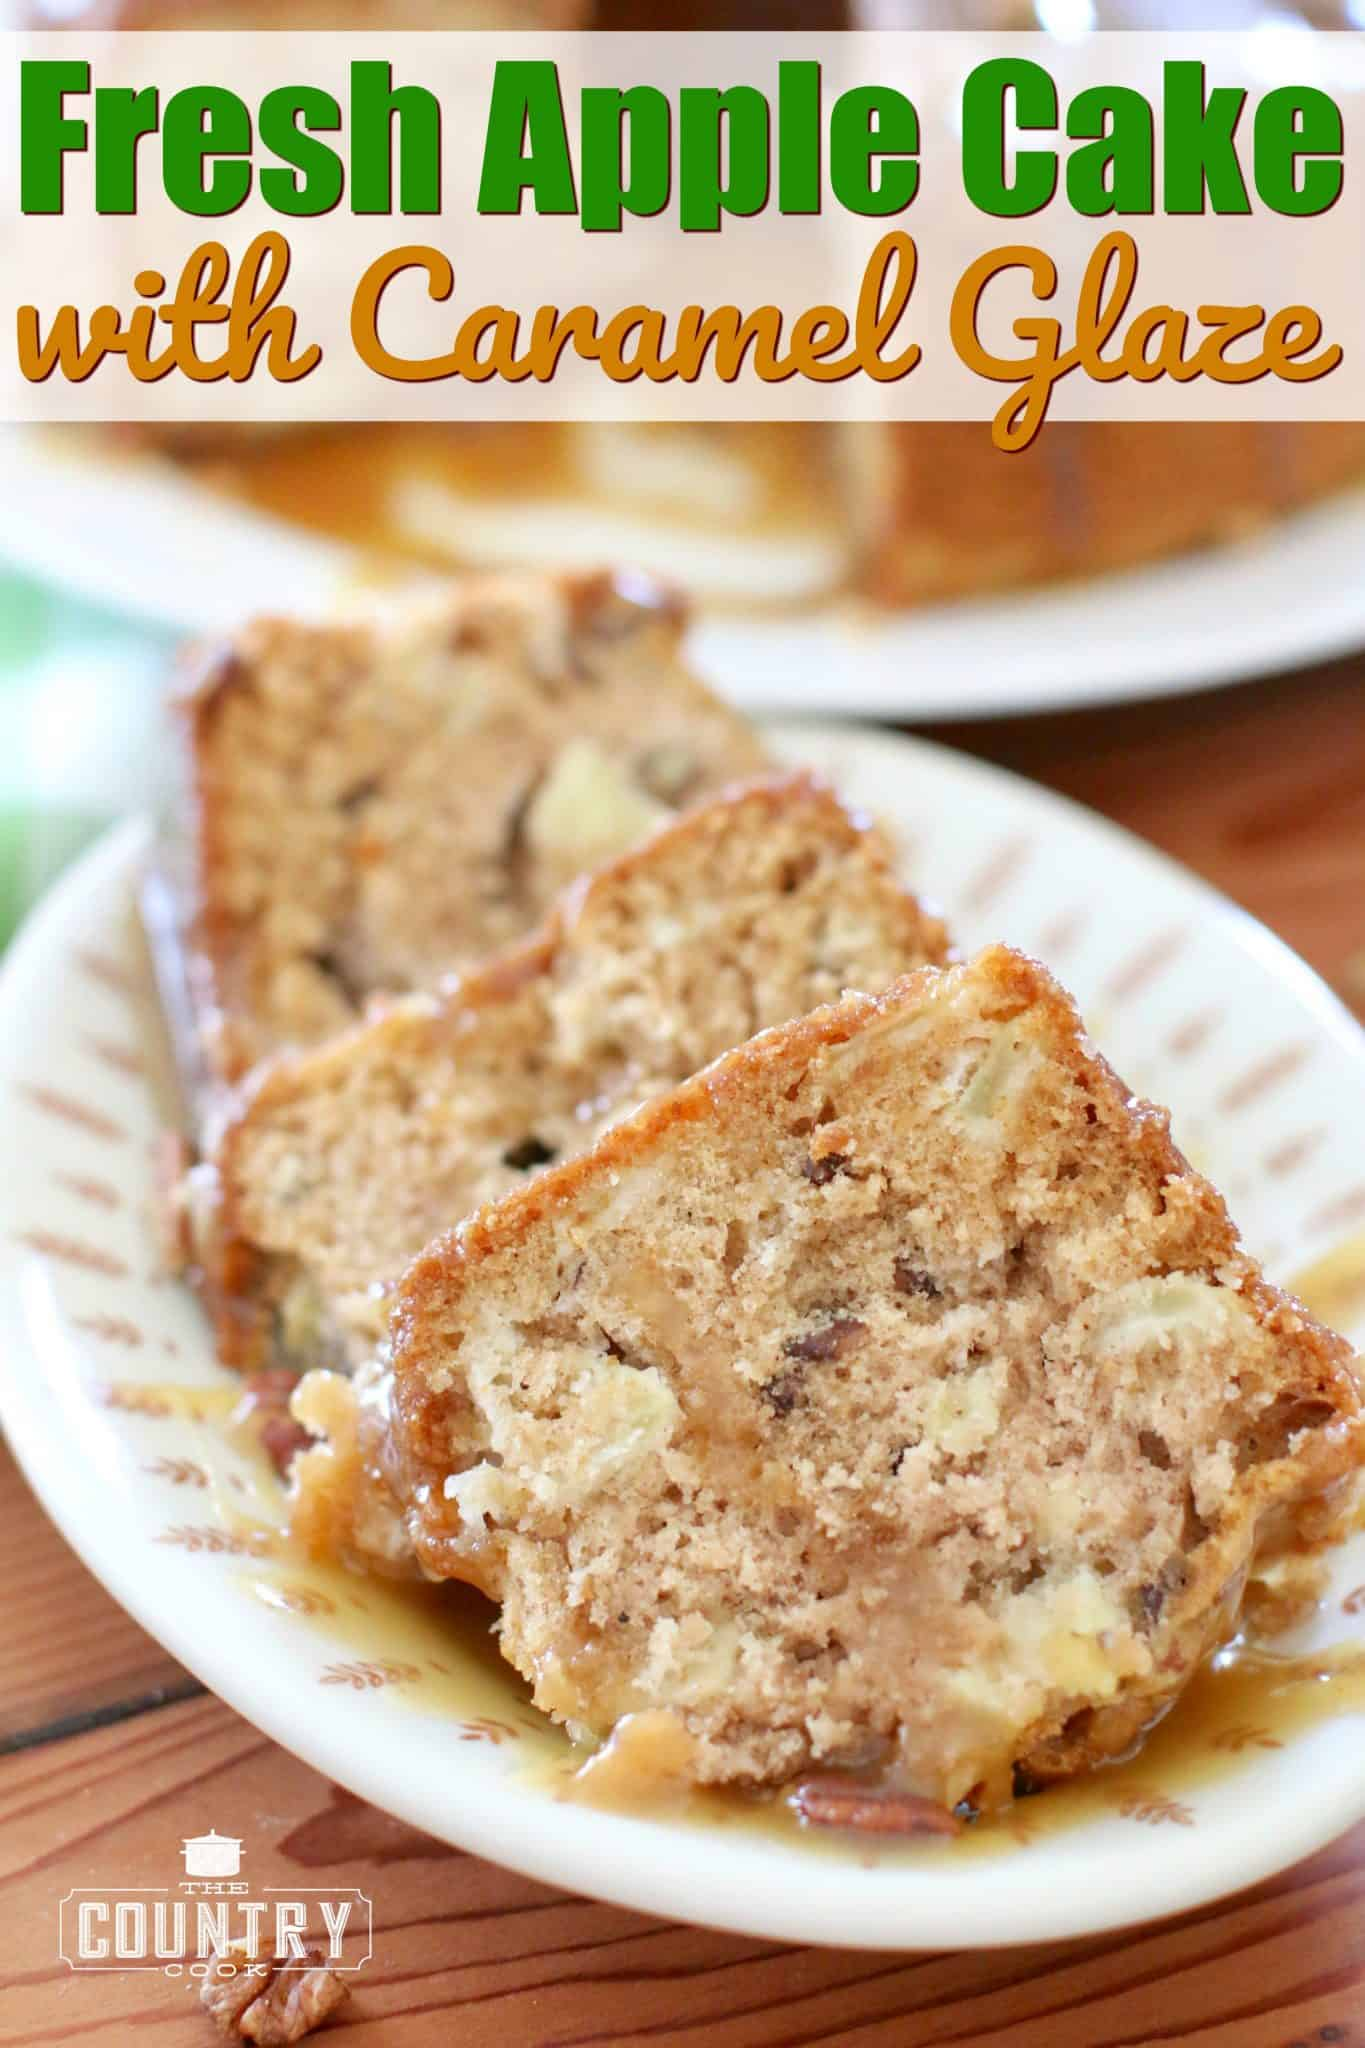 slices of apple cake on a small serving plate with caramel sauce drizzled on top.